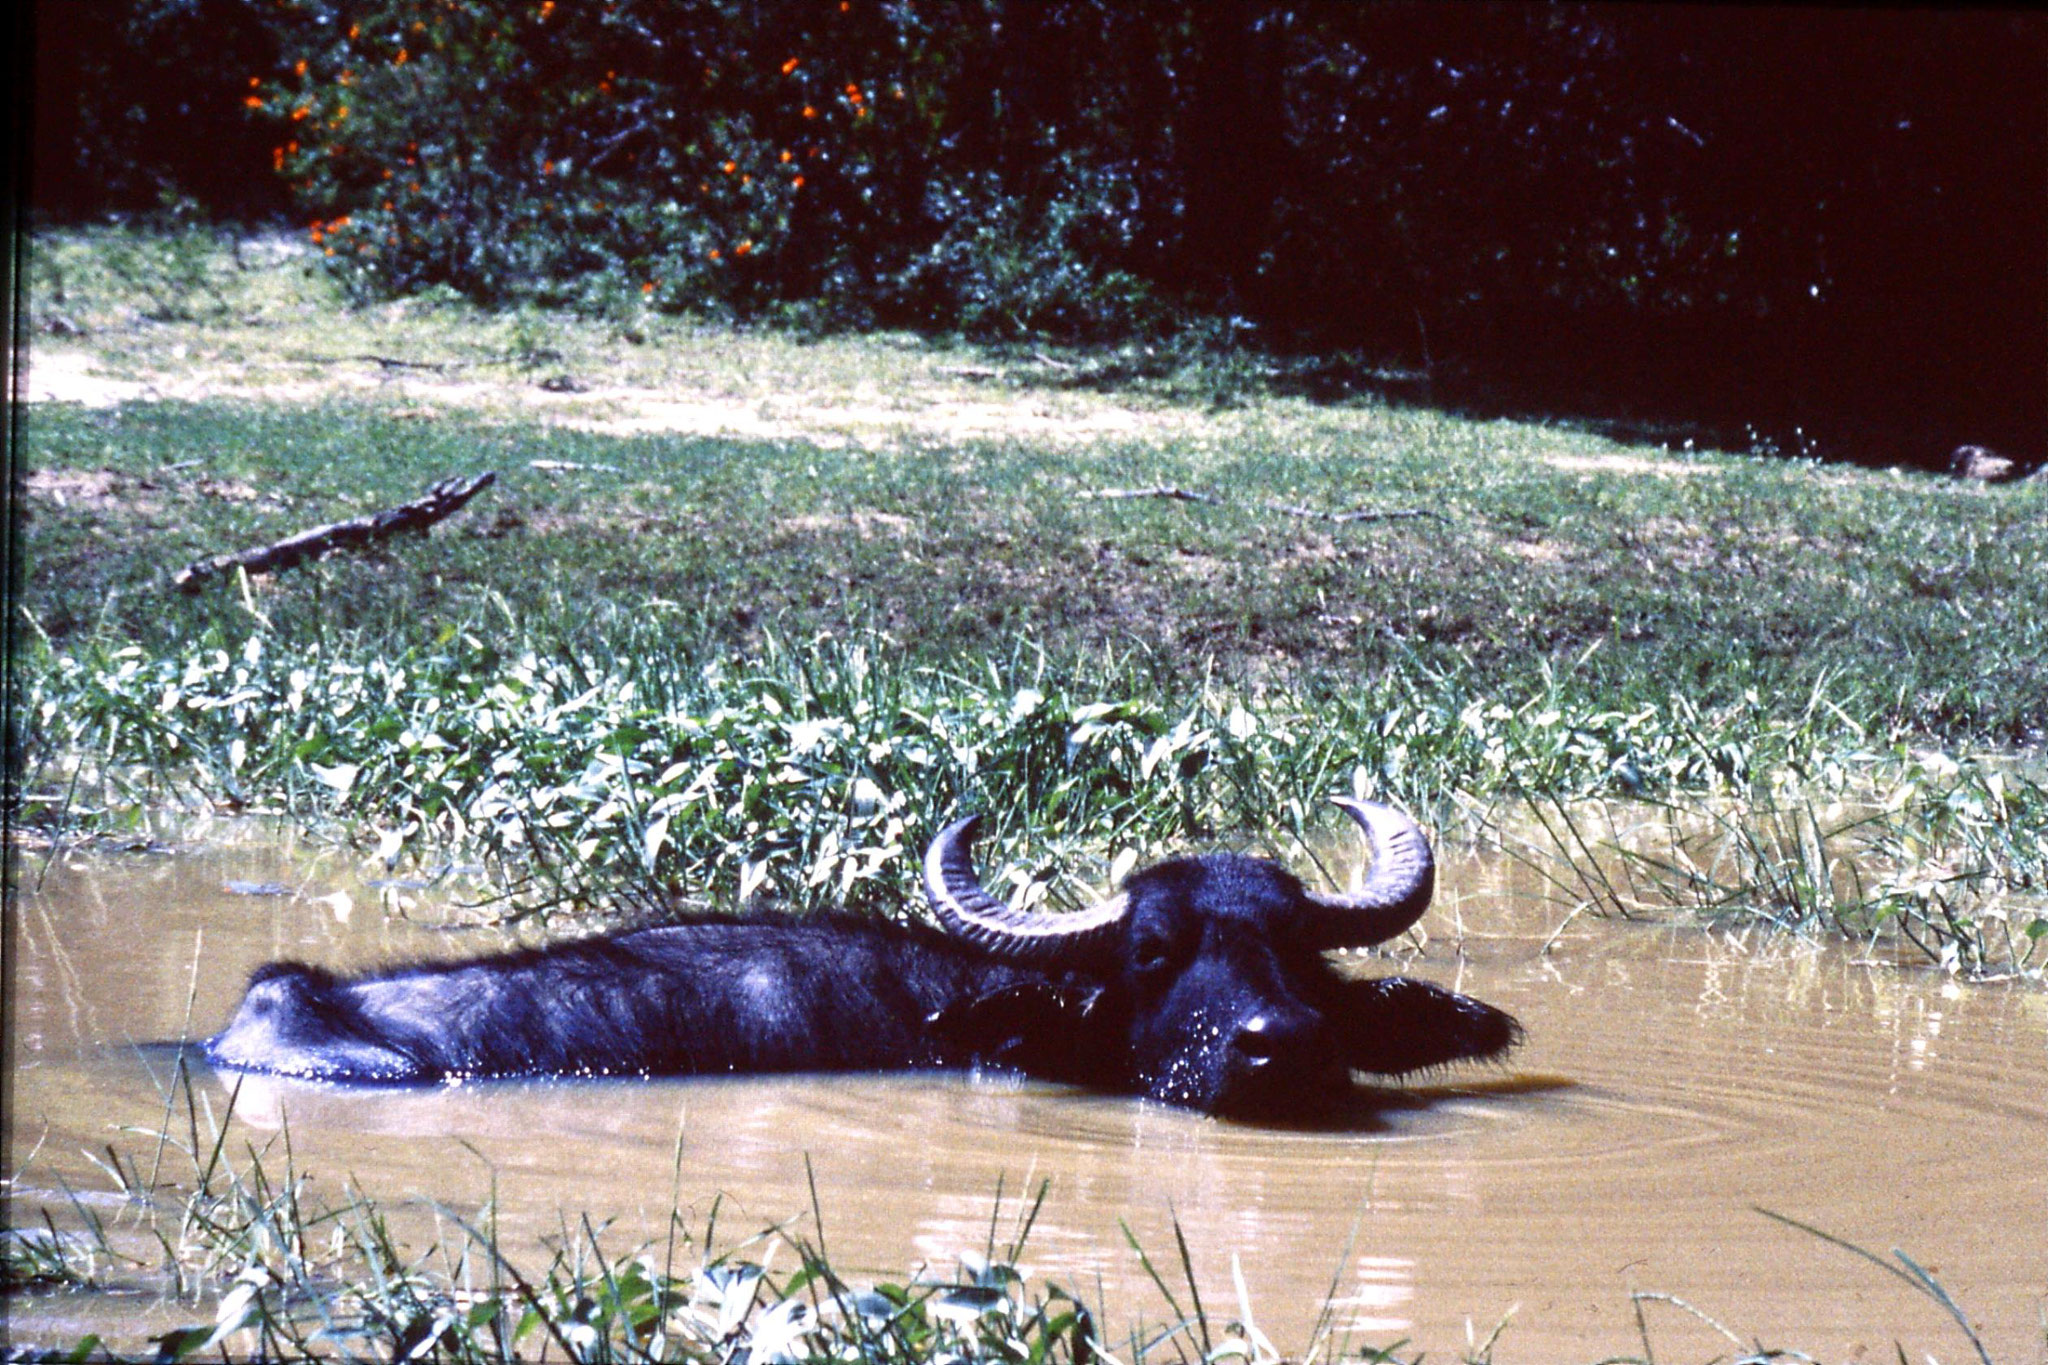 27/1/1989: 24: Yala National Park